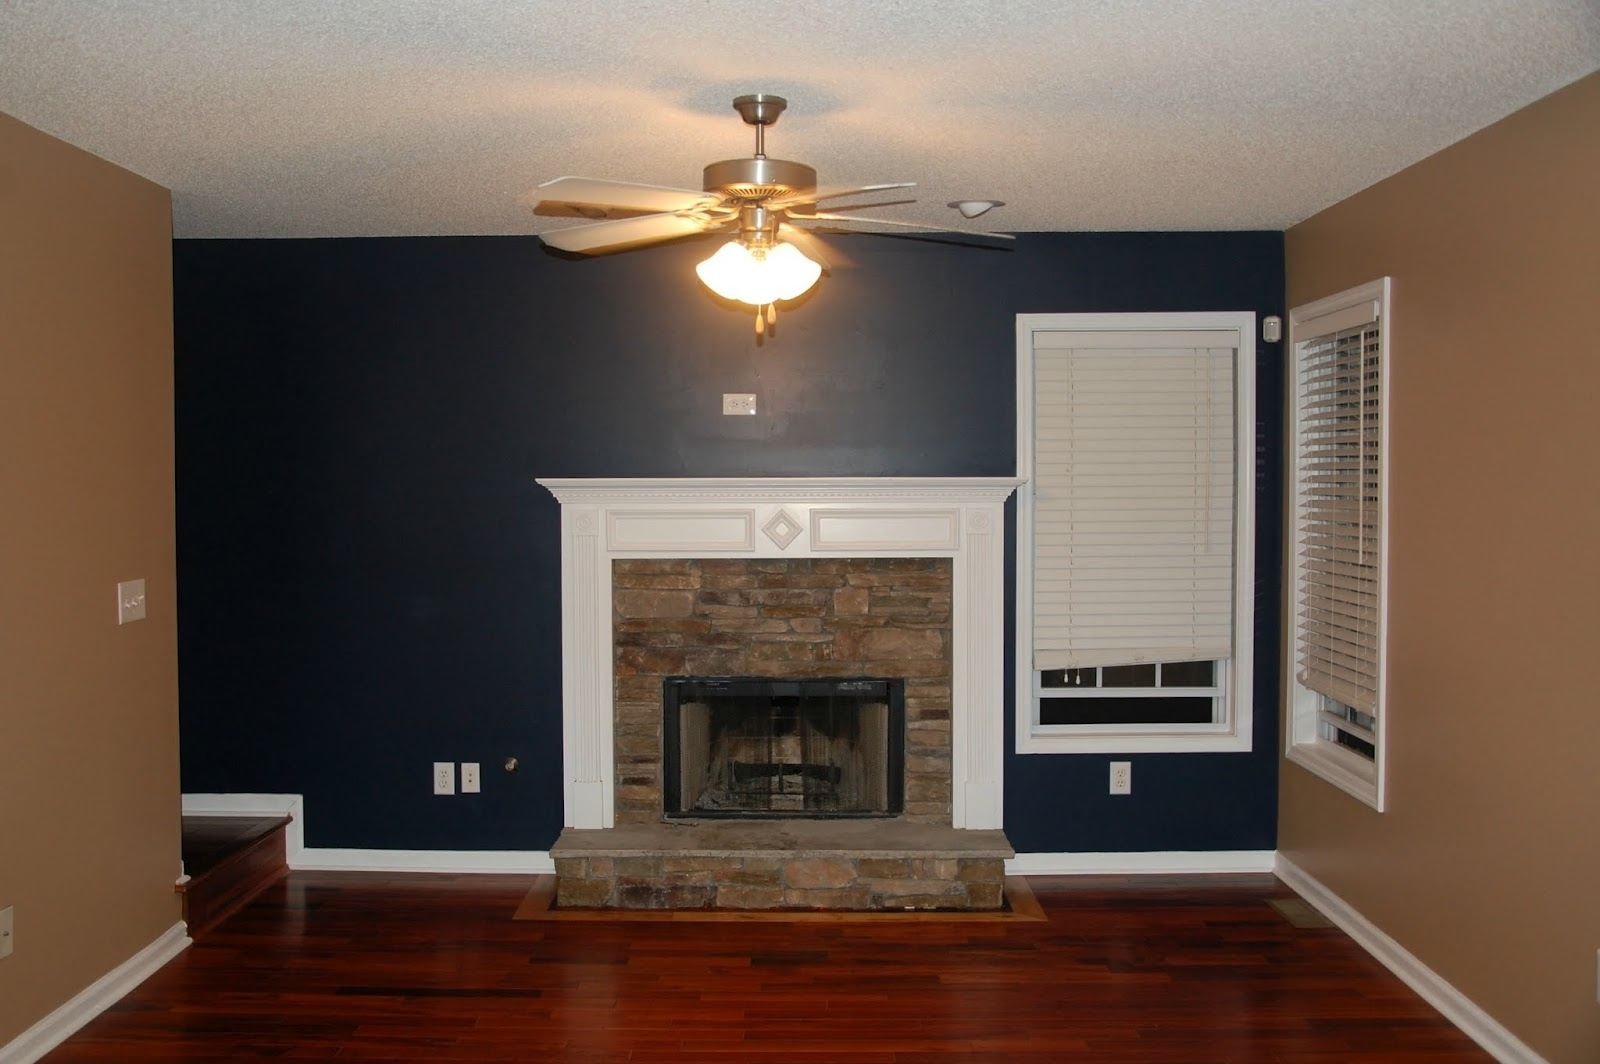 Navy And Tan. I Just Did This Color Combo In My Bedroom And It Pertaining To Popular Wall Accents For Tan Room (Gallery 4 of 15)